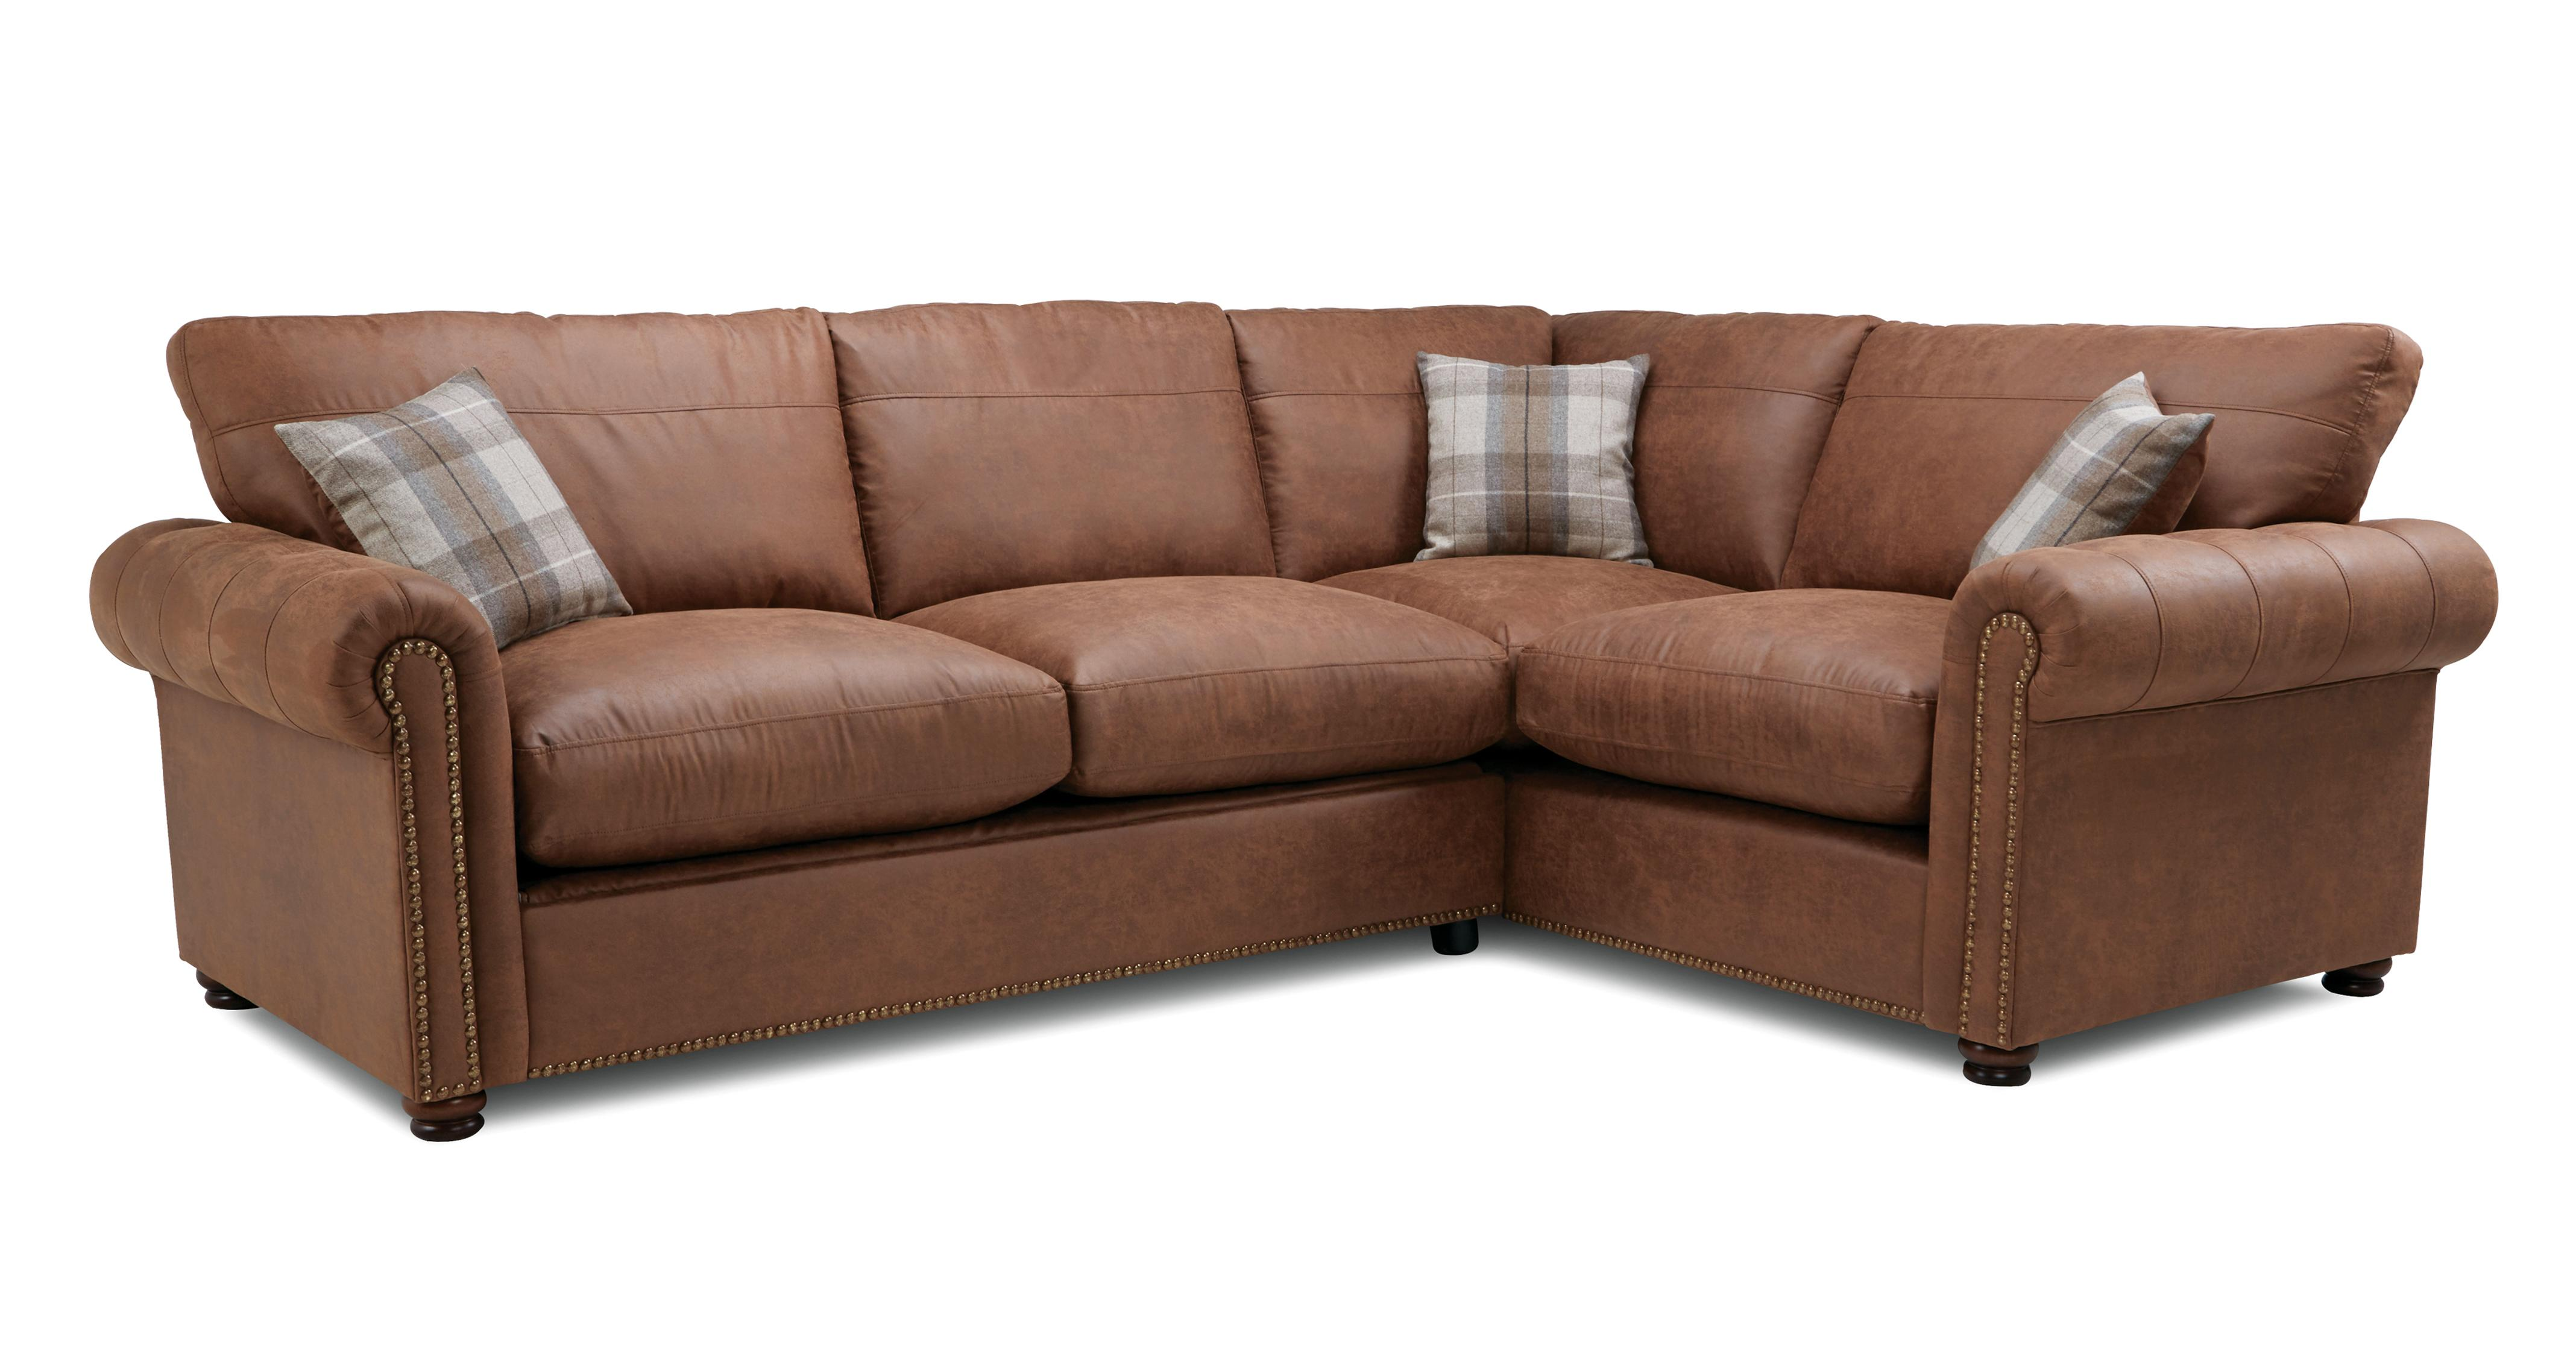 sofa express uk reviews free removal london dfs oakland review home co